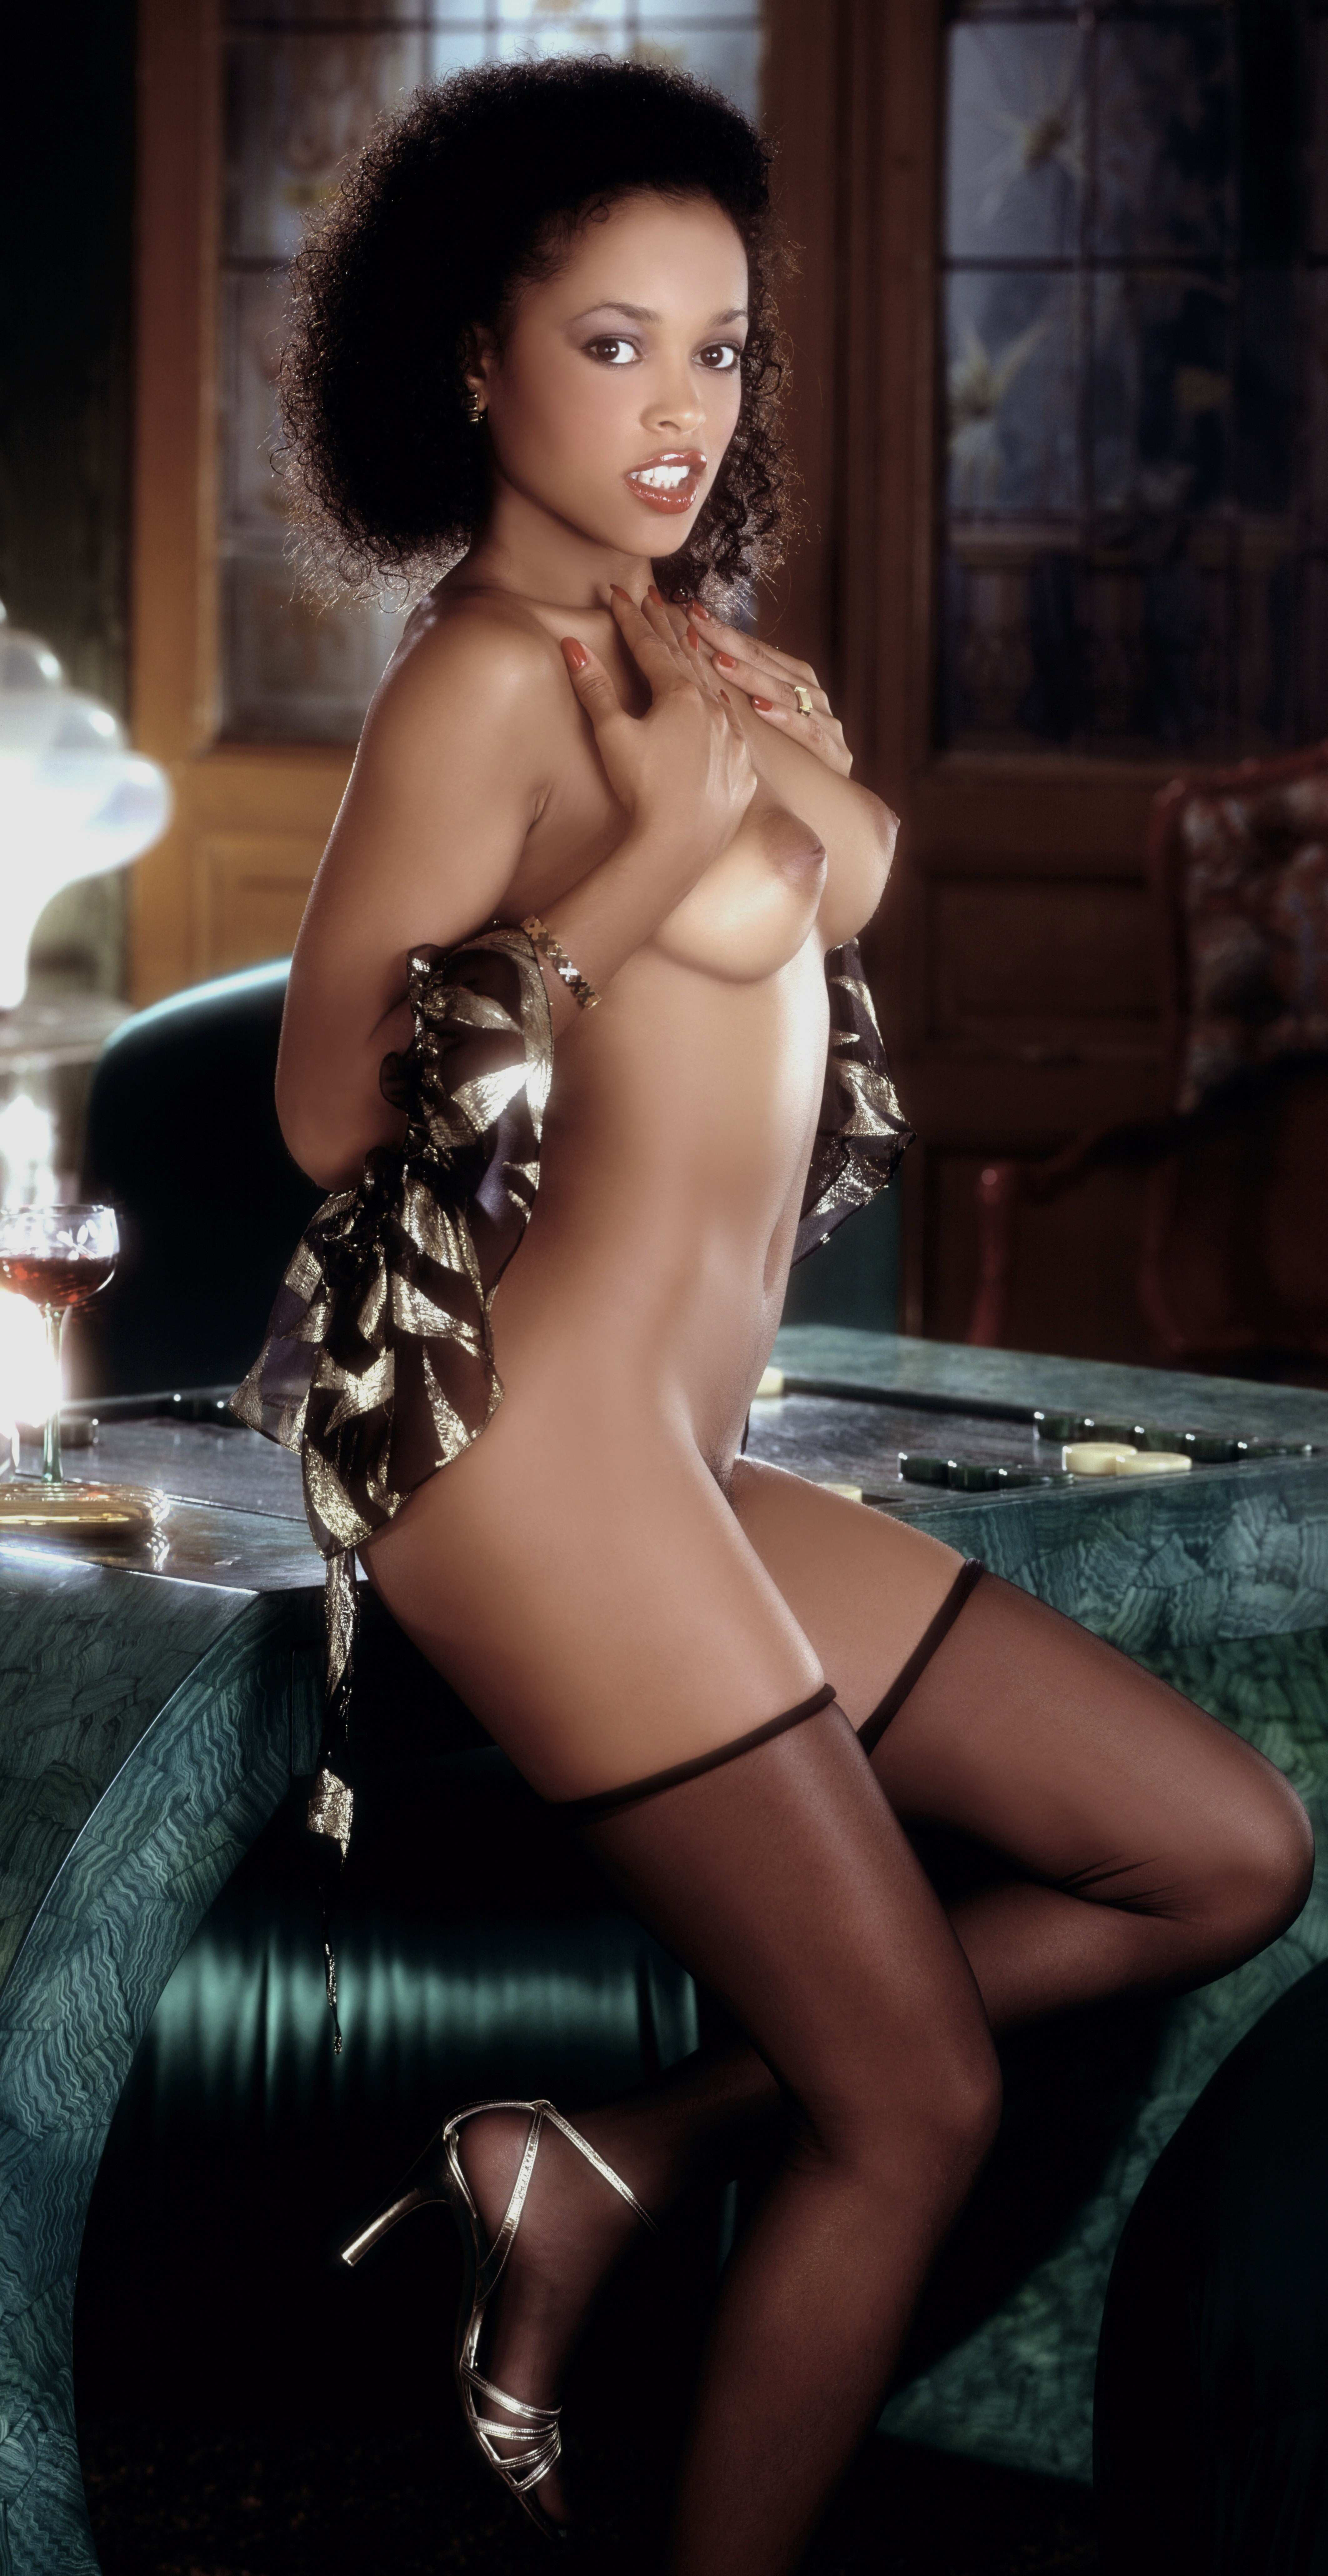 Nude ola ray The Playmate